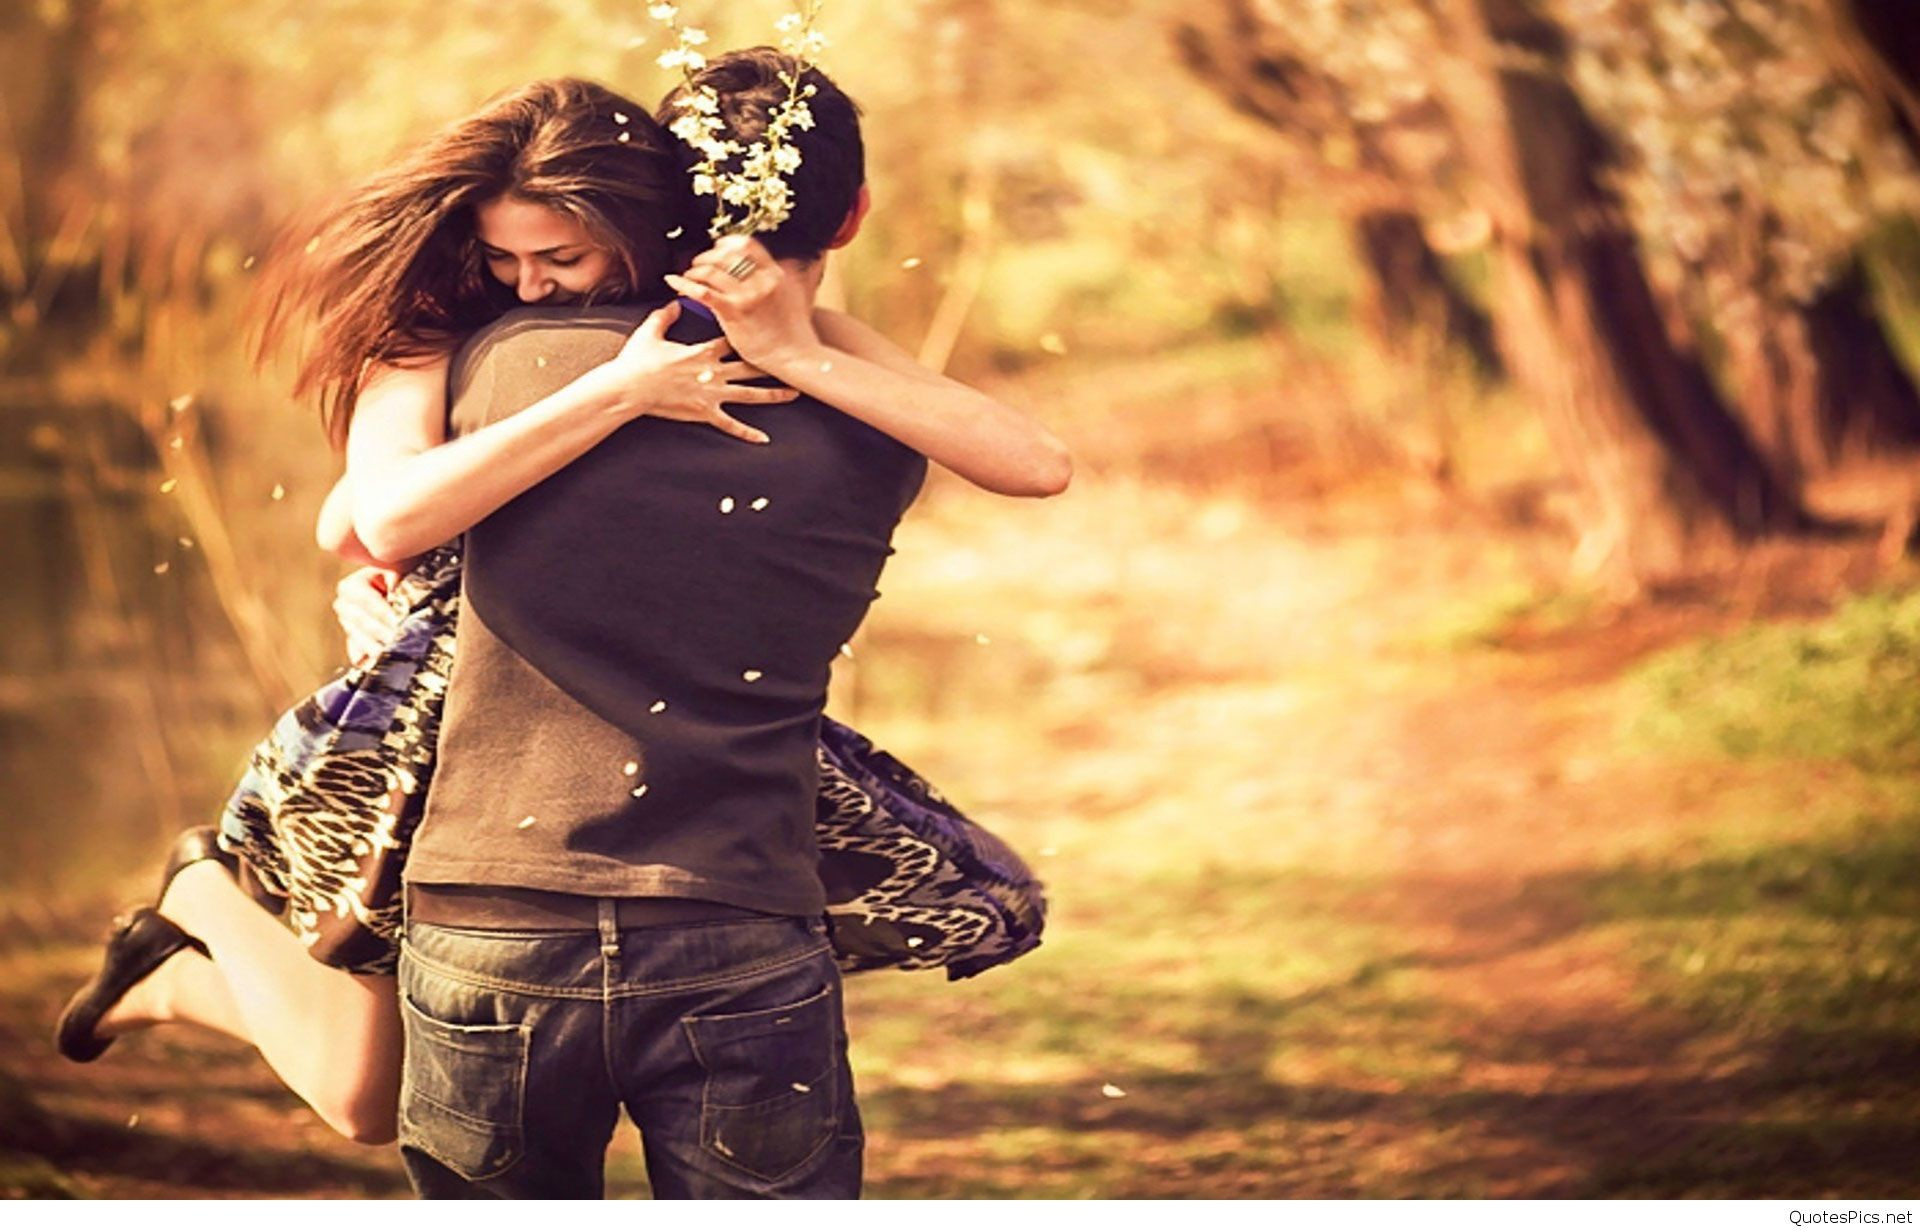 1920x1230 754c8580828fc5dbe21cec7cce7596a5 ddc26d131041957dafaa5cd26ec109bc  pleasing-couple-love-hug-wallpaper ...